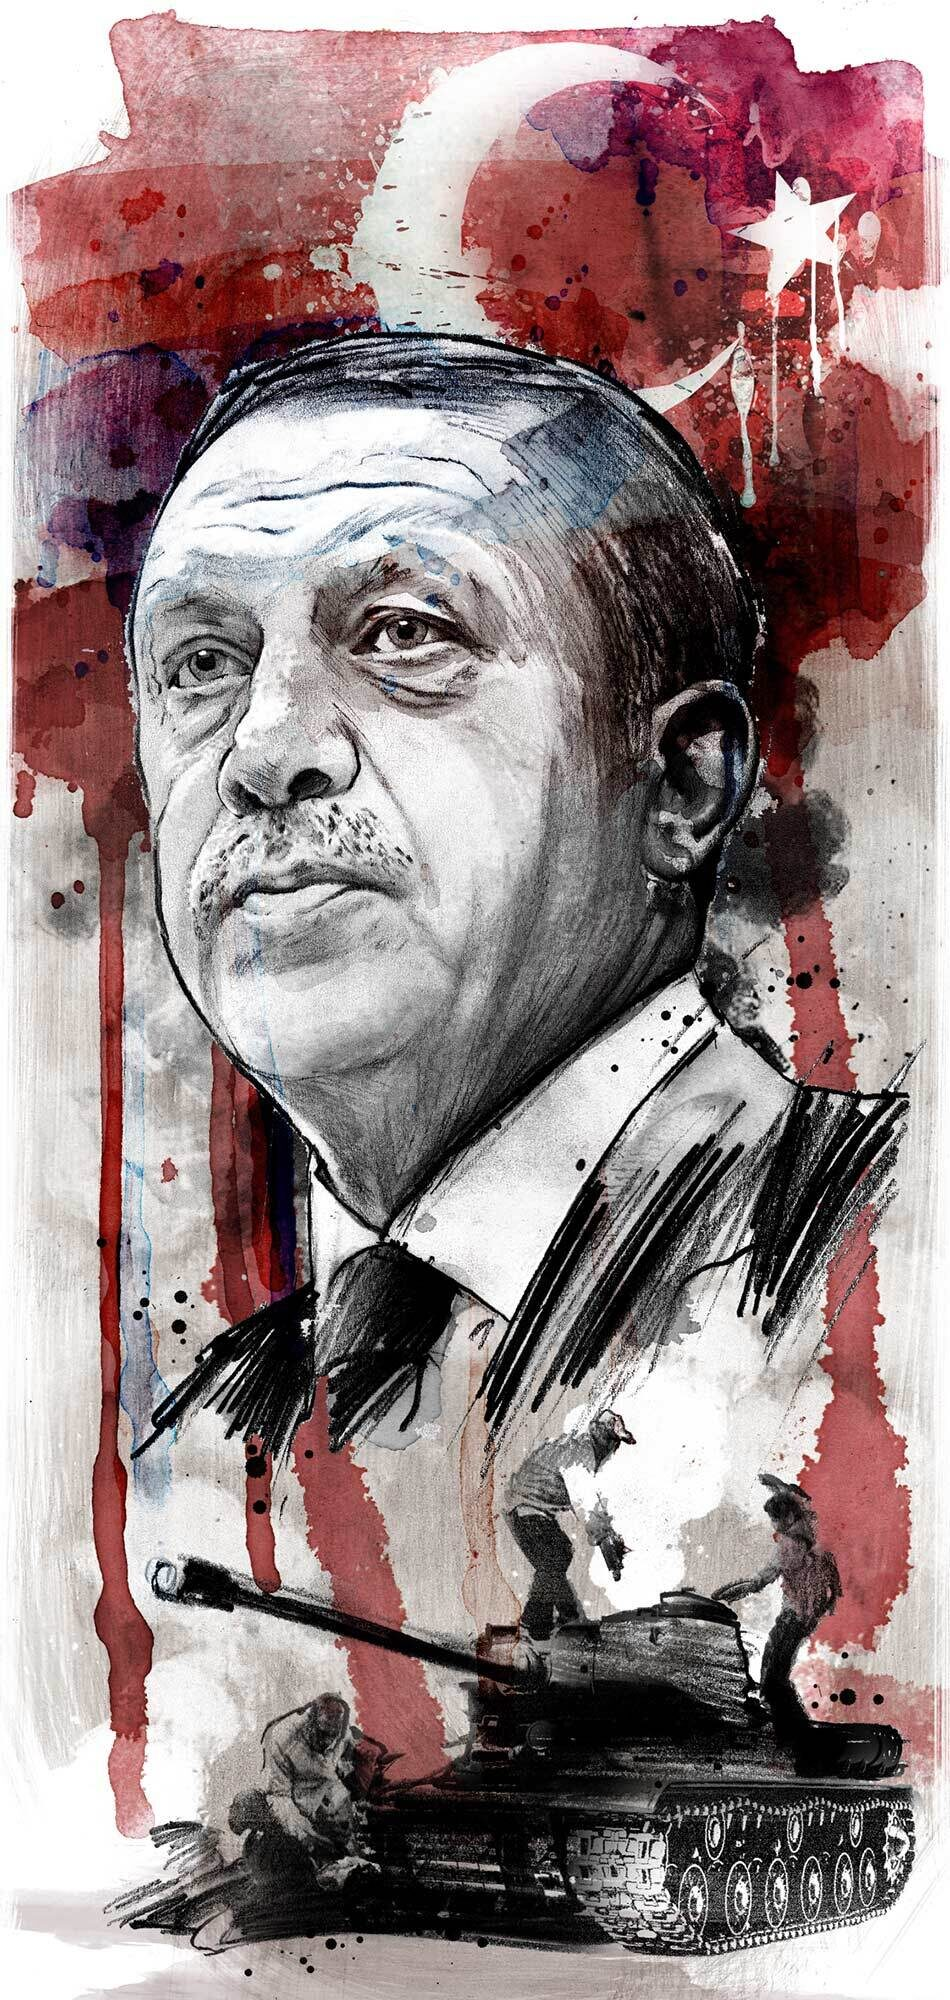 Turkey Erdogan editorial portrait illustration - Kornel Illustration | Kornel Stadler portfolio